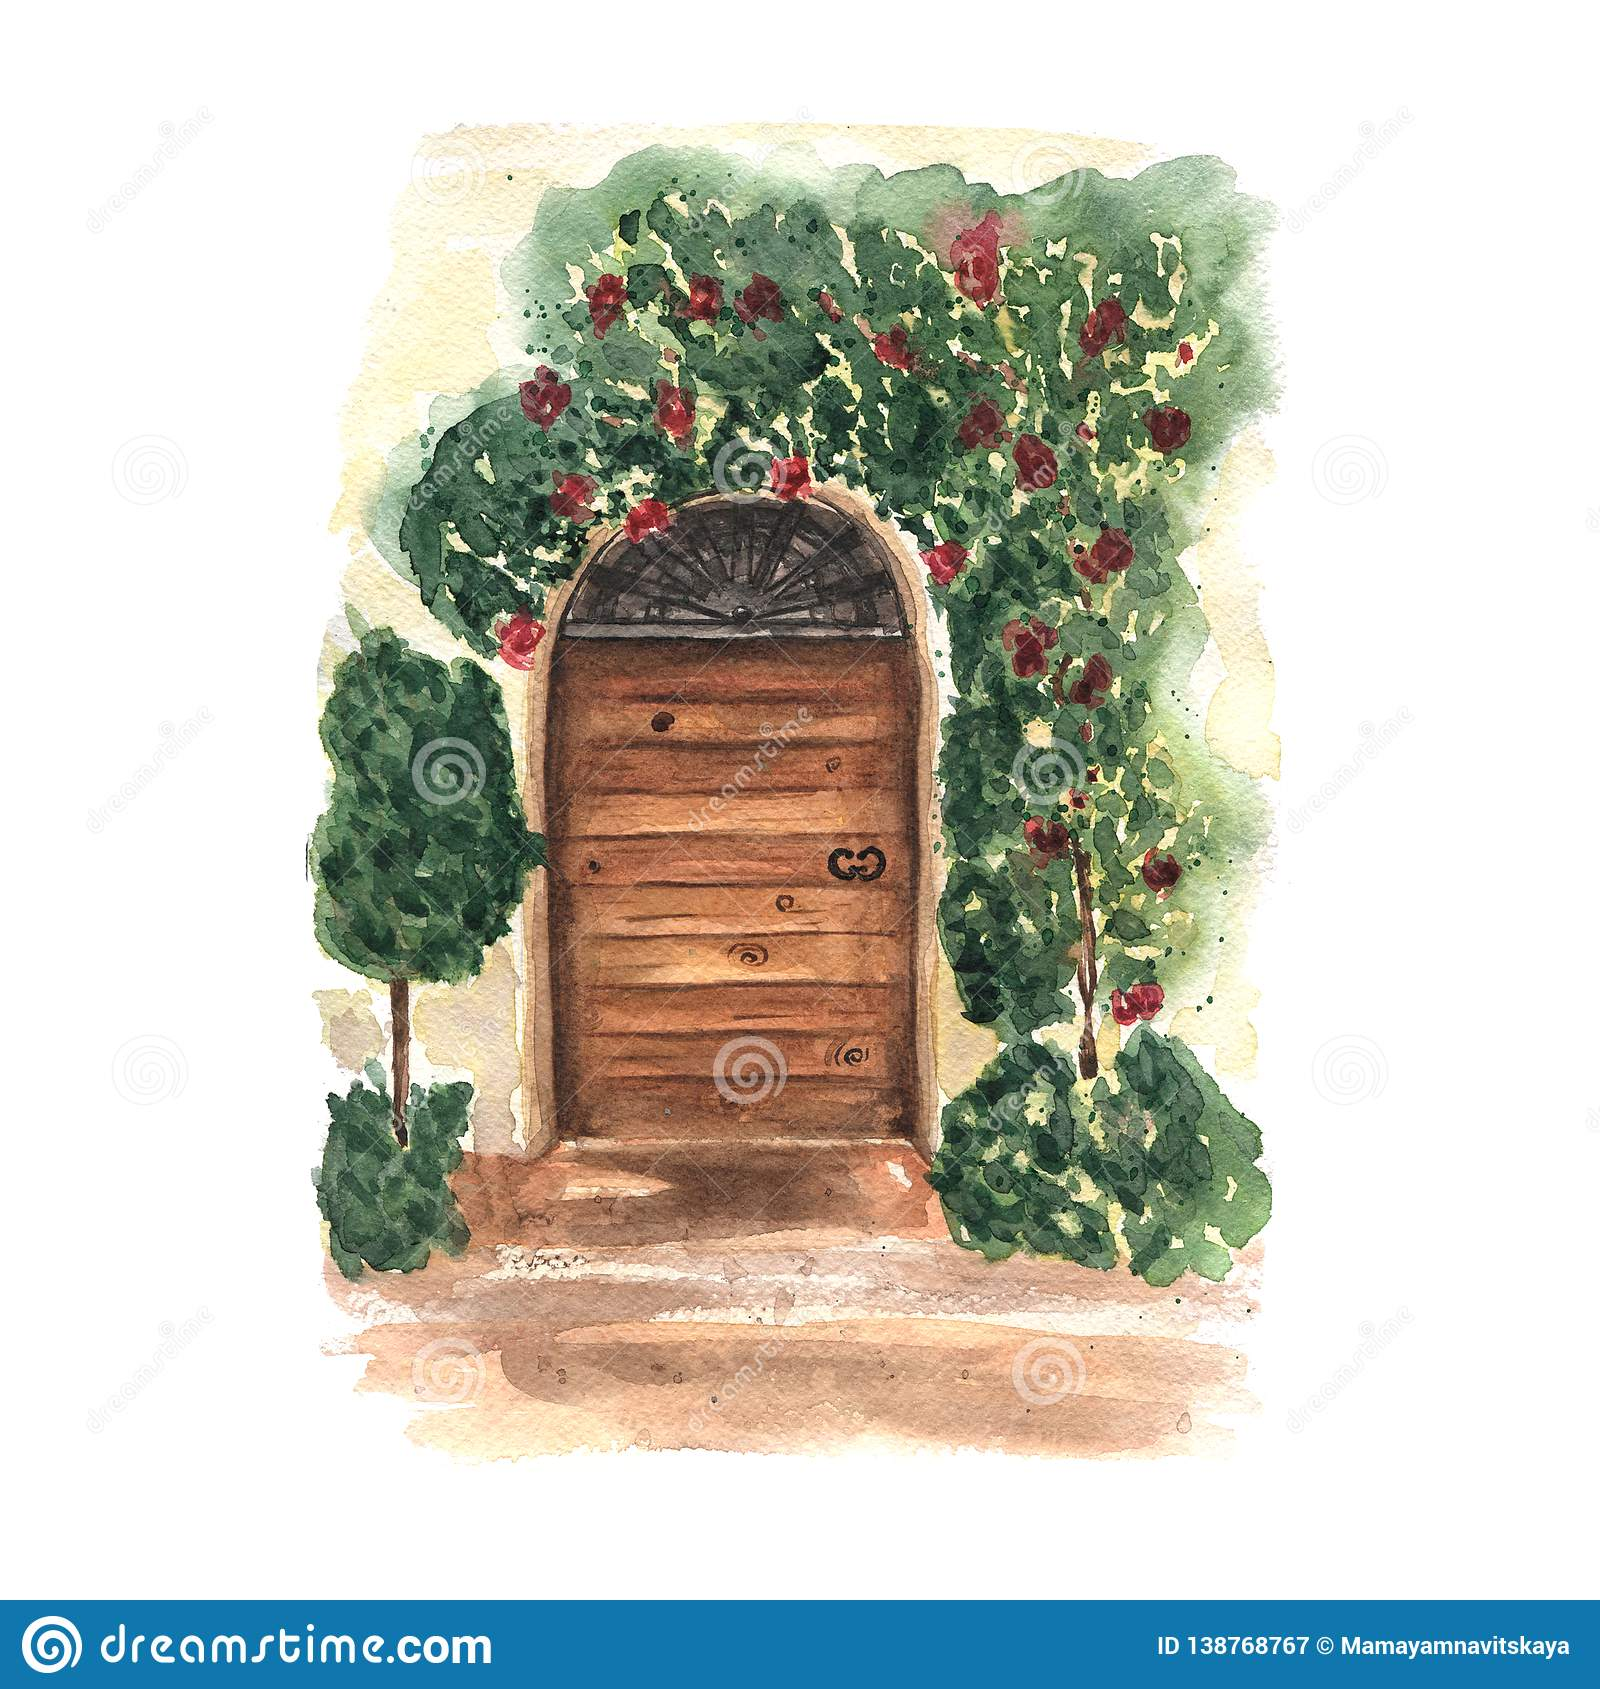 Watercolor postcard with decorative floral old wooden door. Provence design. Italy romantic place.